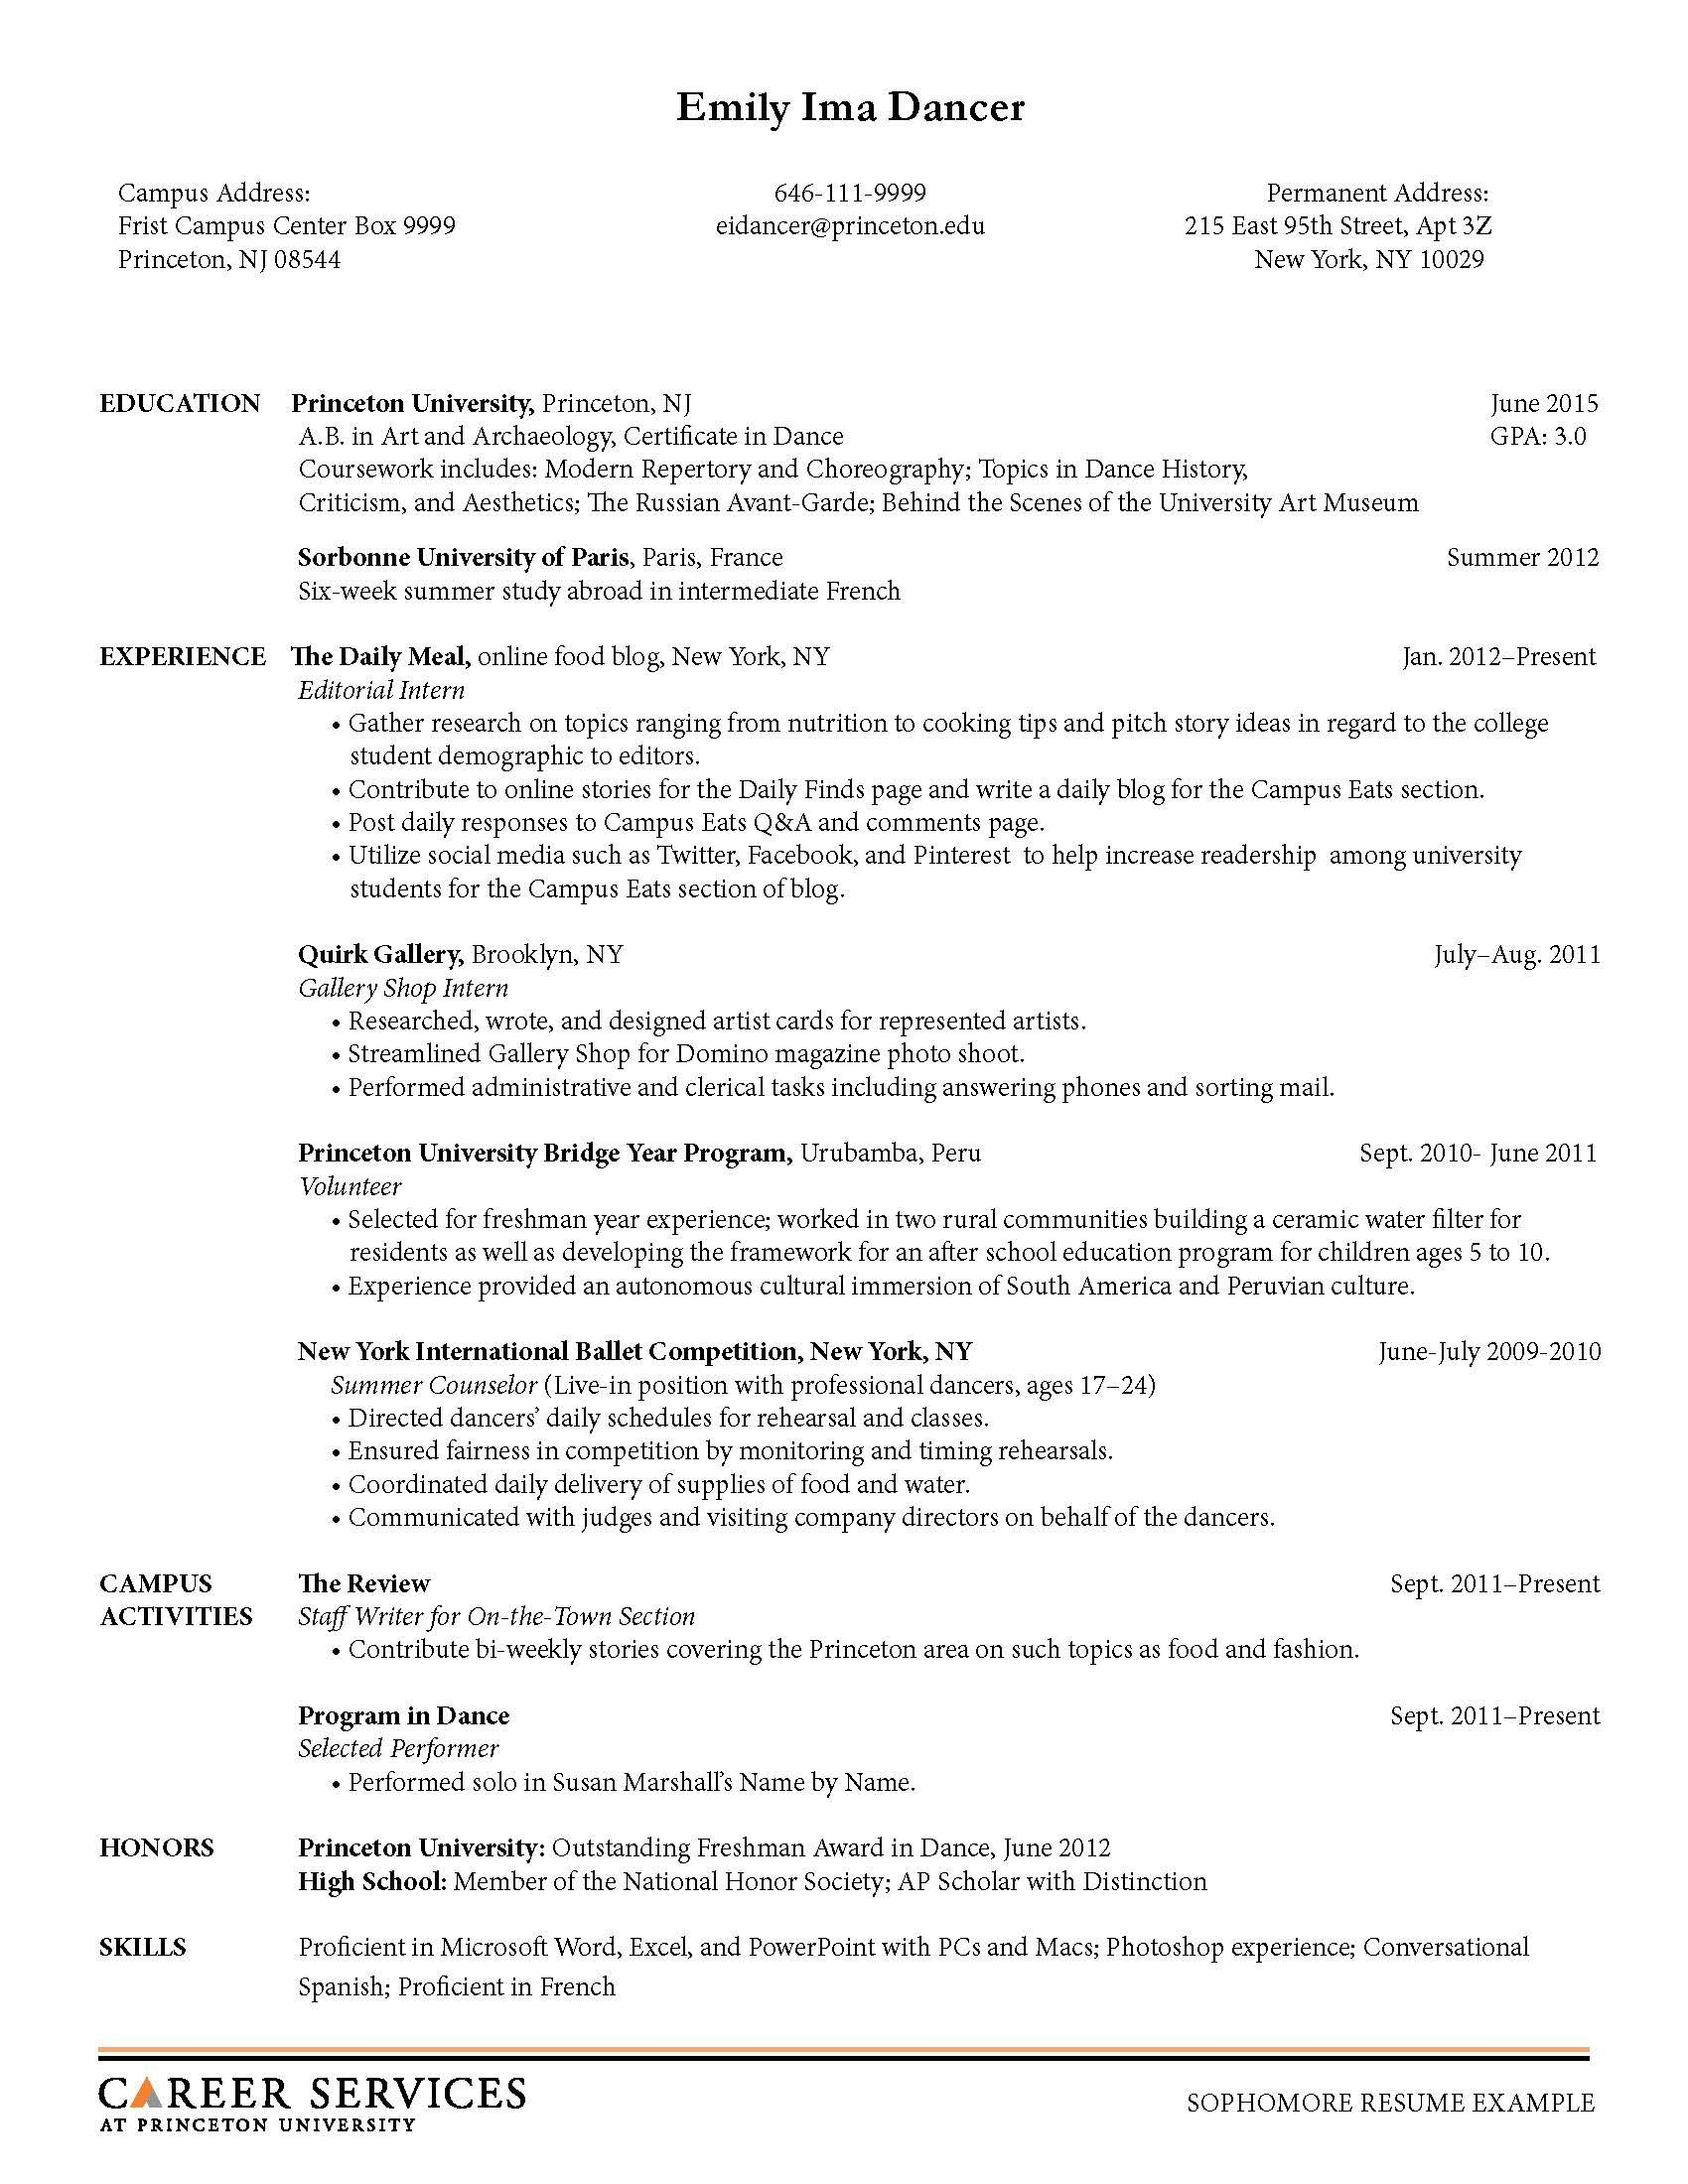 Opposenewapstandardsus  Fascinating Sample Resume Resume And Career On Pinterest With Luxury Dental Resume Besides How To Format A Resume In Word Furthermore Business Administration Resume With Astonishing College Student Resume Sample Also Resume Pronunciation In Addition Cook Resume Sample And Company Resume As Well As Best Resume Service Additionally Resume Rabbit Reviews From Pinterestcom With Opposenewapstandardsus  Luxury Sample Resume Resume And Career On Pinterest With Astonishing Dental Resume Besides How To Format A Resume In Word Furthermore Business Administration Resume And Fascinating College Student Resume Sample Also Resume Pronunciation In Addition Cook Resume Sample From Pinterestcom